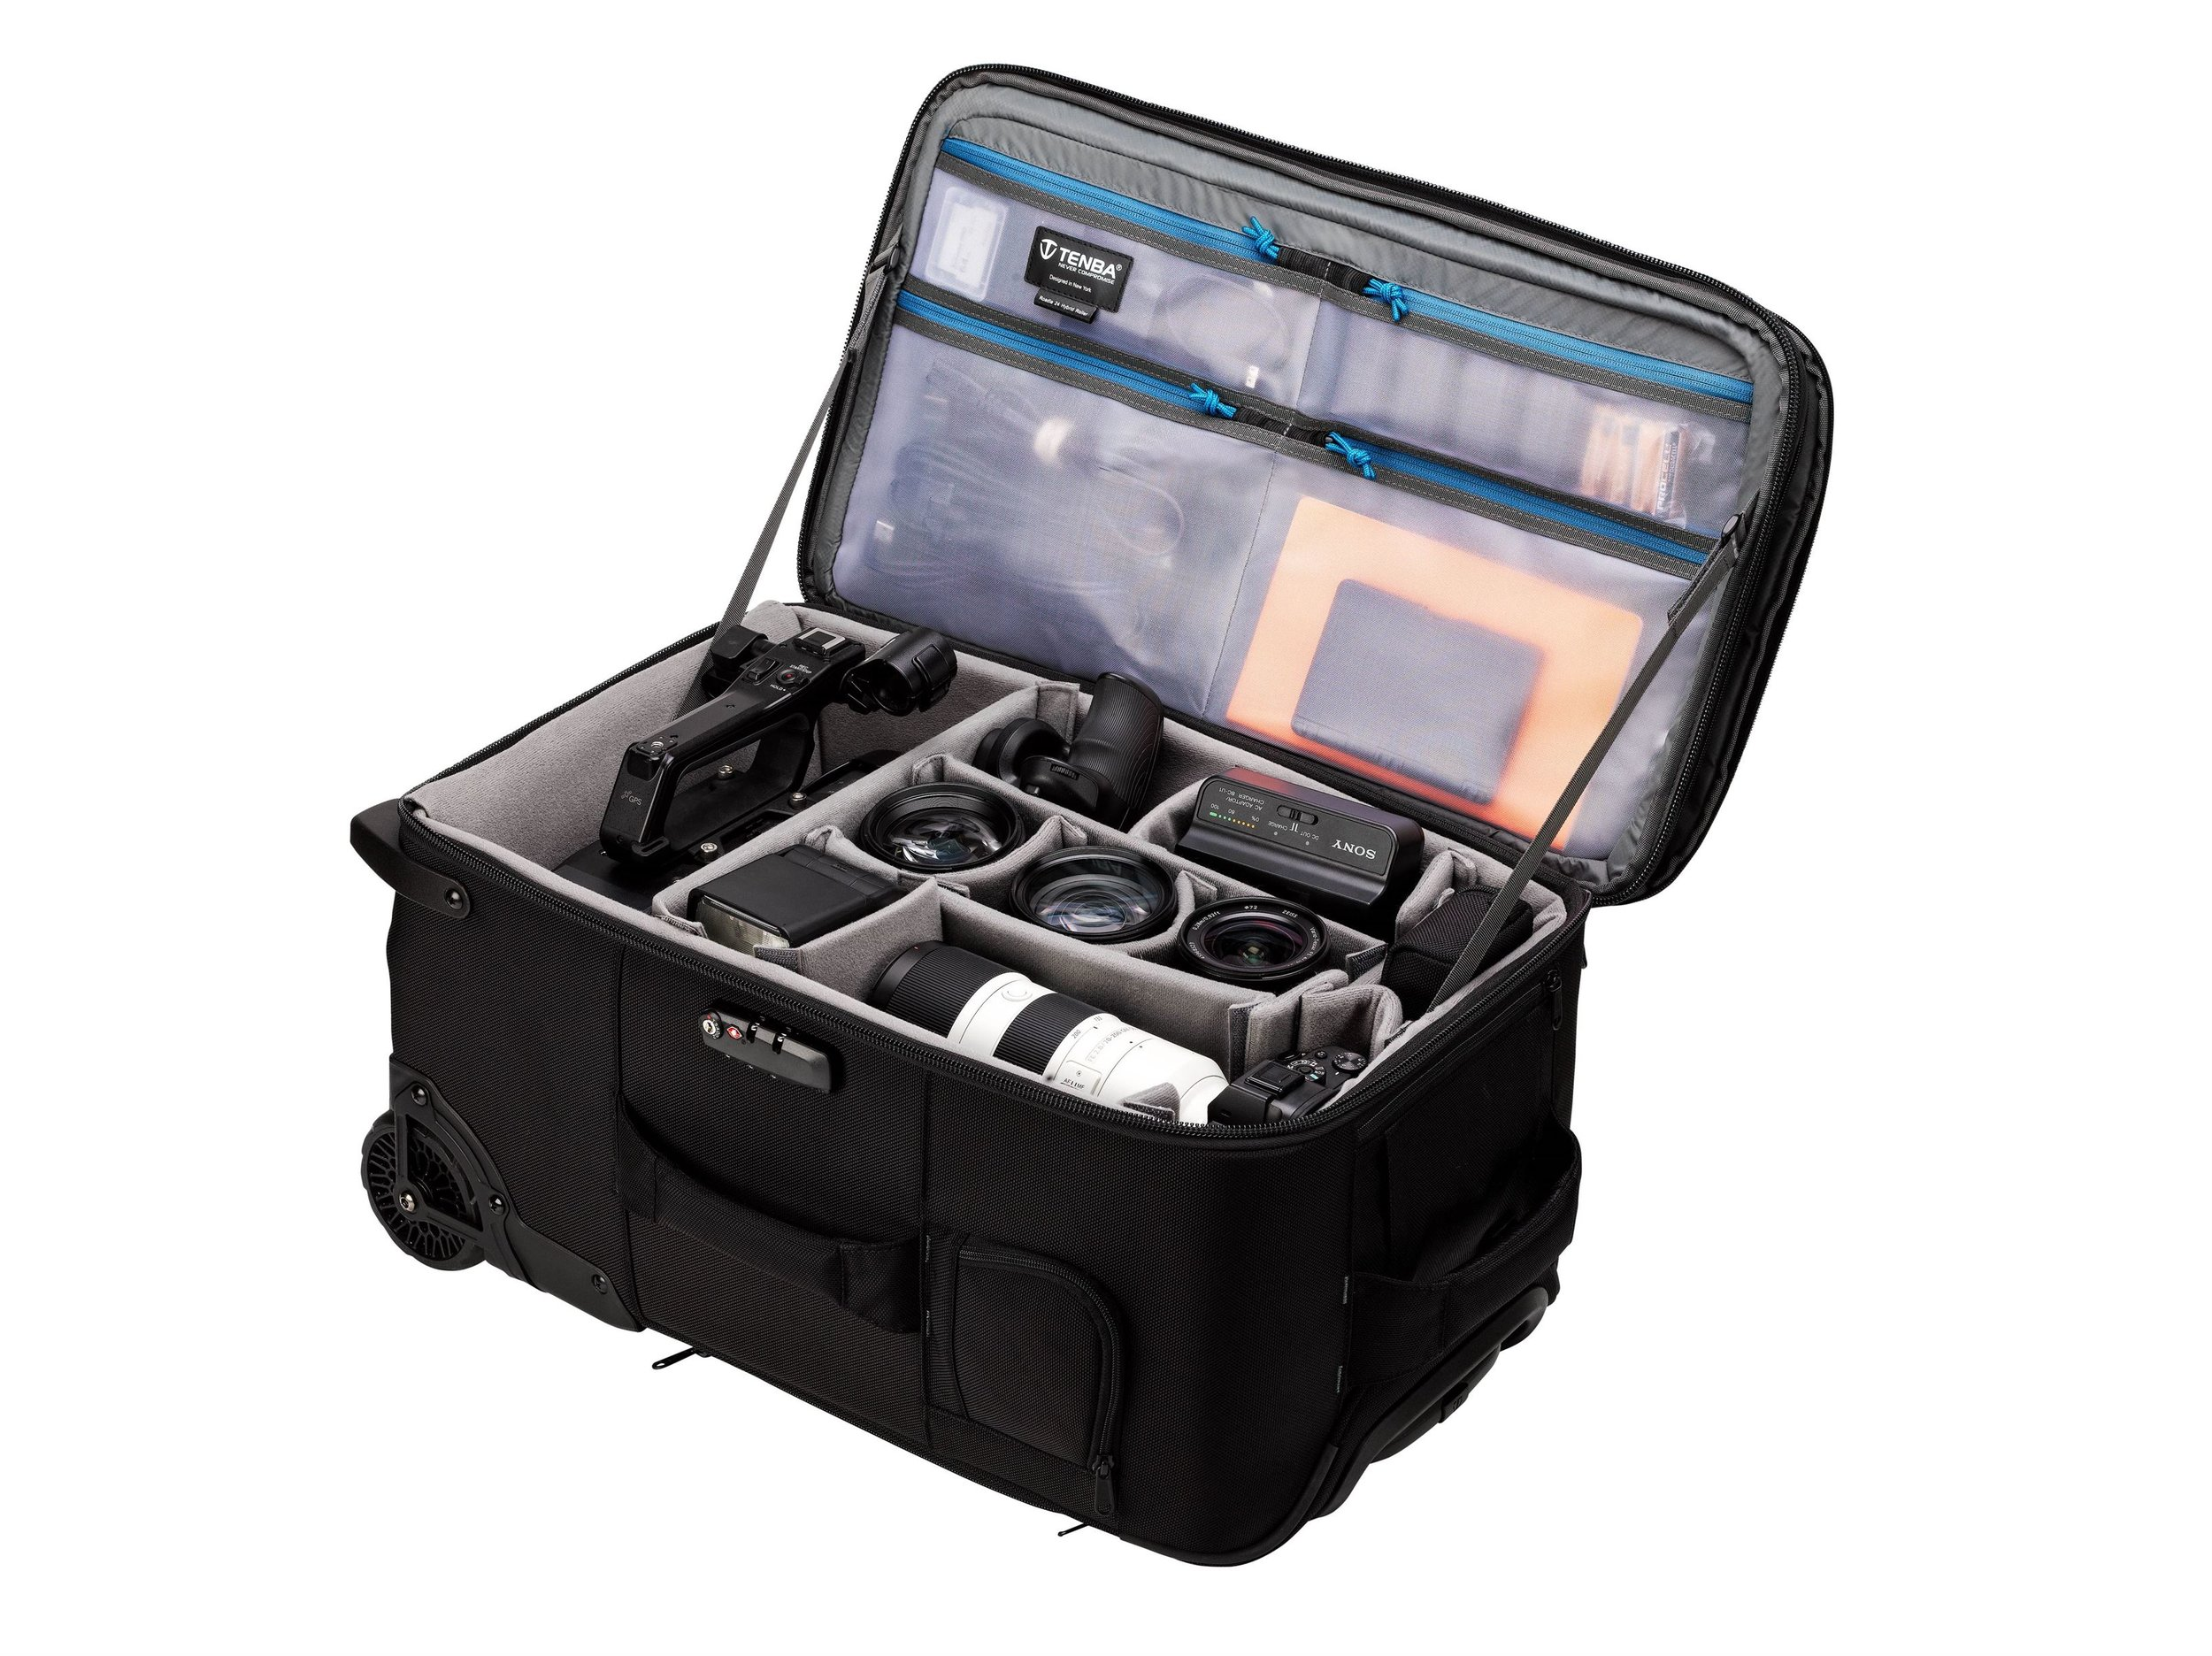 A COMPLETE ROLLING STUDIO - Due to its larger-than-carry-on dimensions, the Roadie Roller 24 can efficiently carry large systems in a single case. Cameras and lenses can be stored along with flash and lighting systems. 70-200mm 2.8 lenses will fit standing vertically to maximize interior storage. This is an all-in-one case for location shoots.